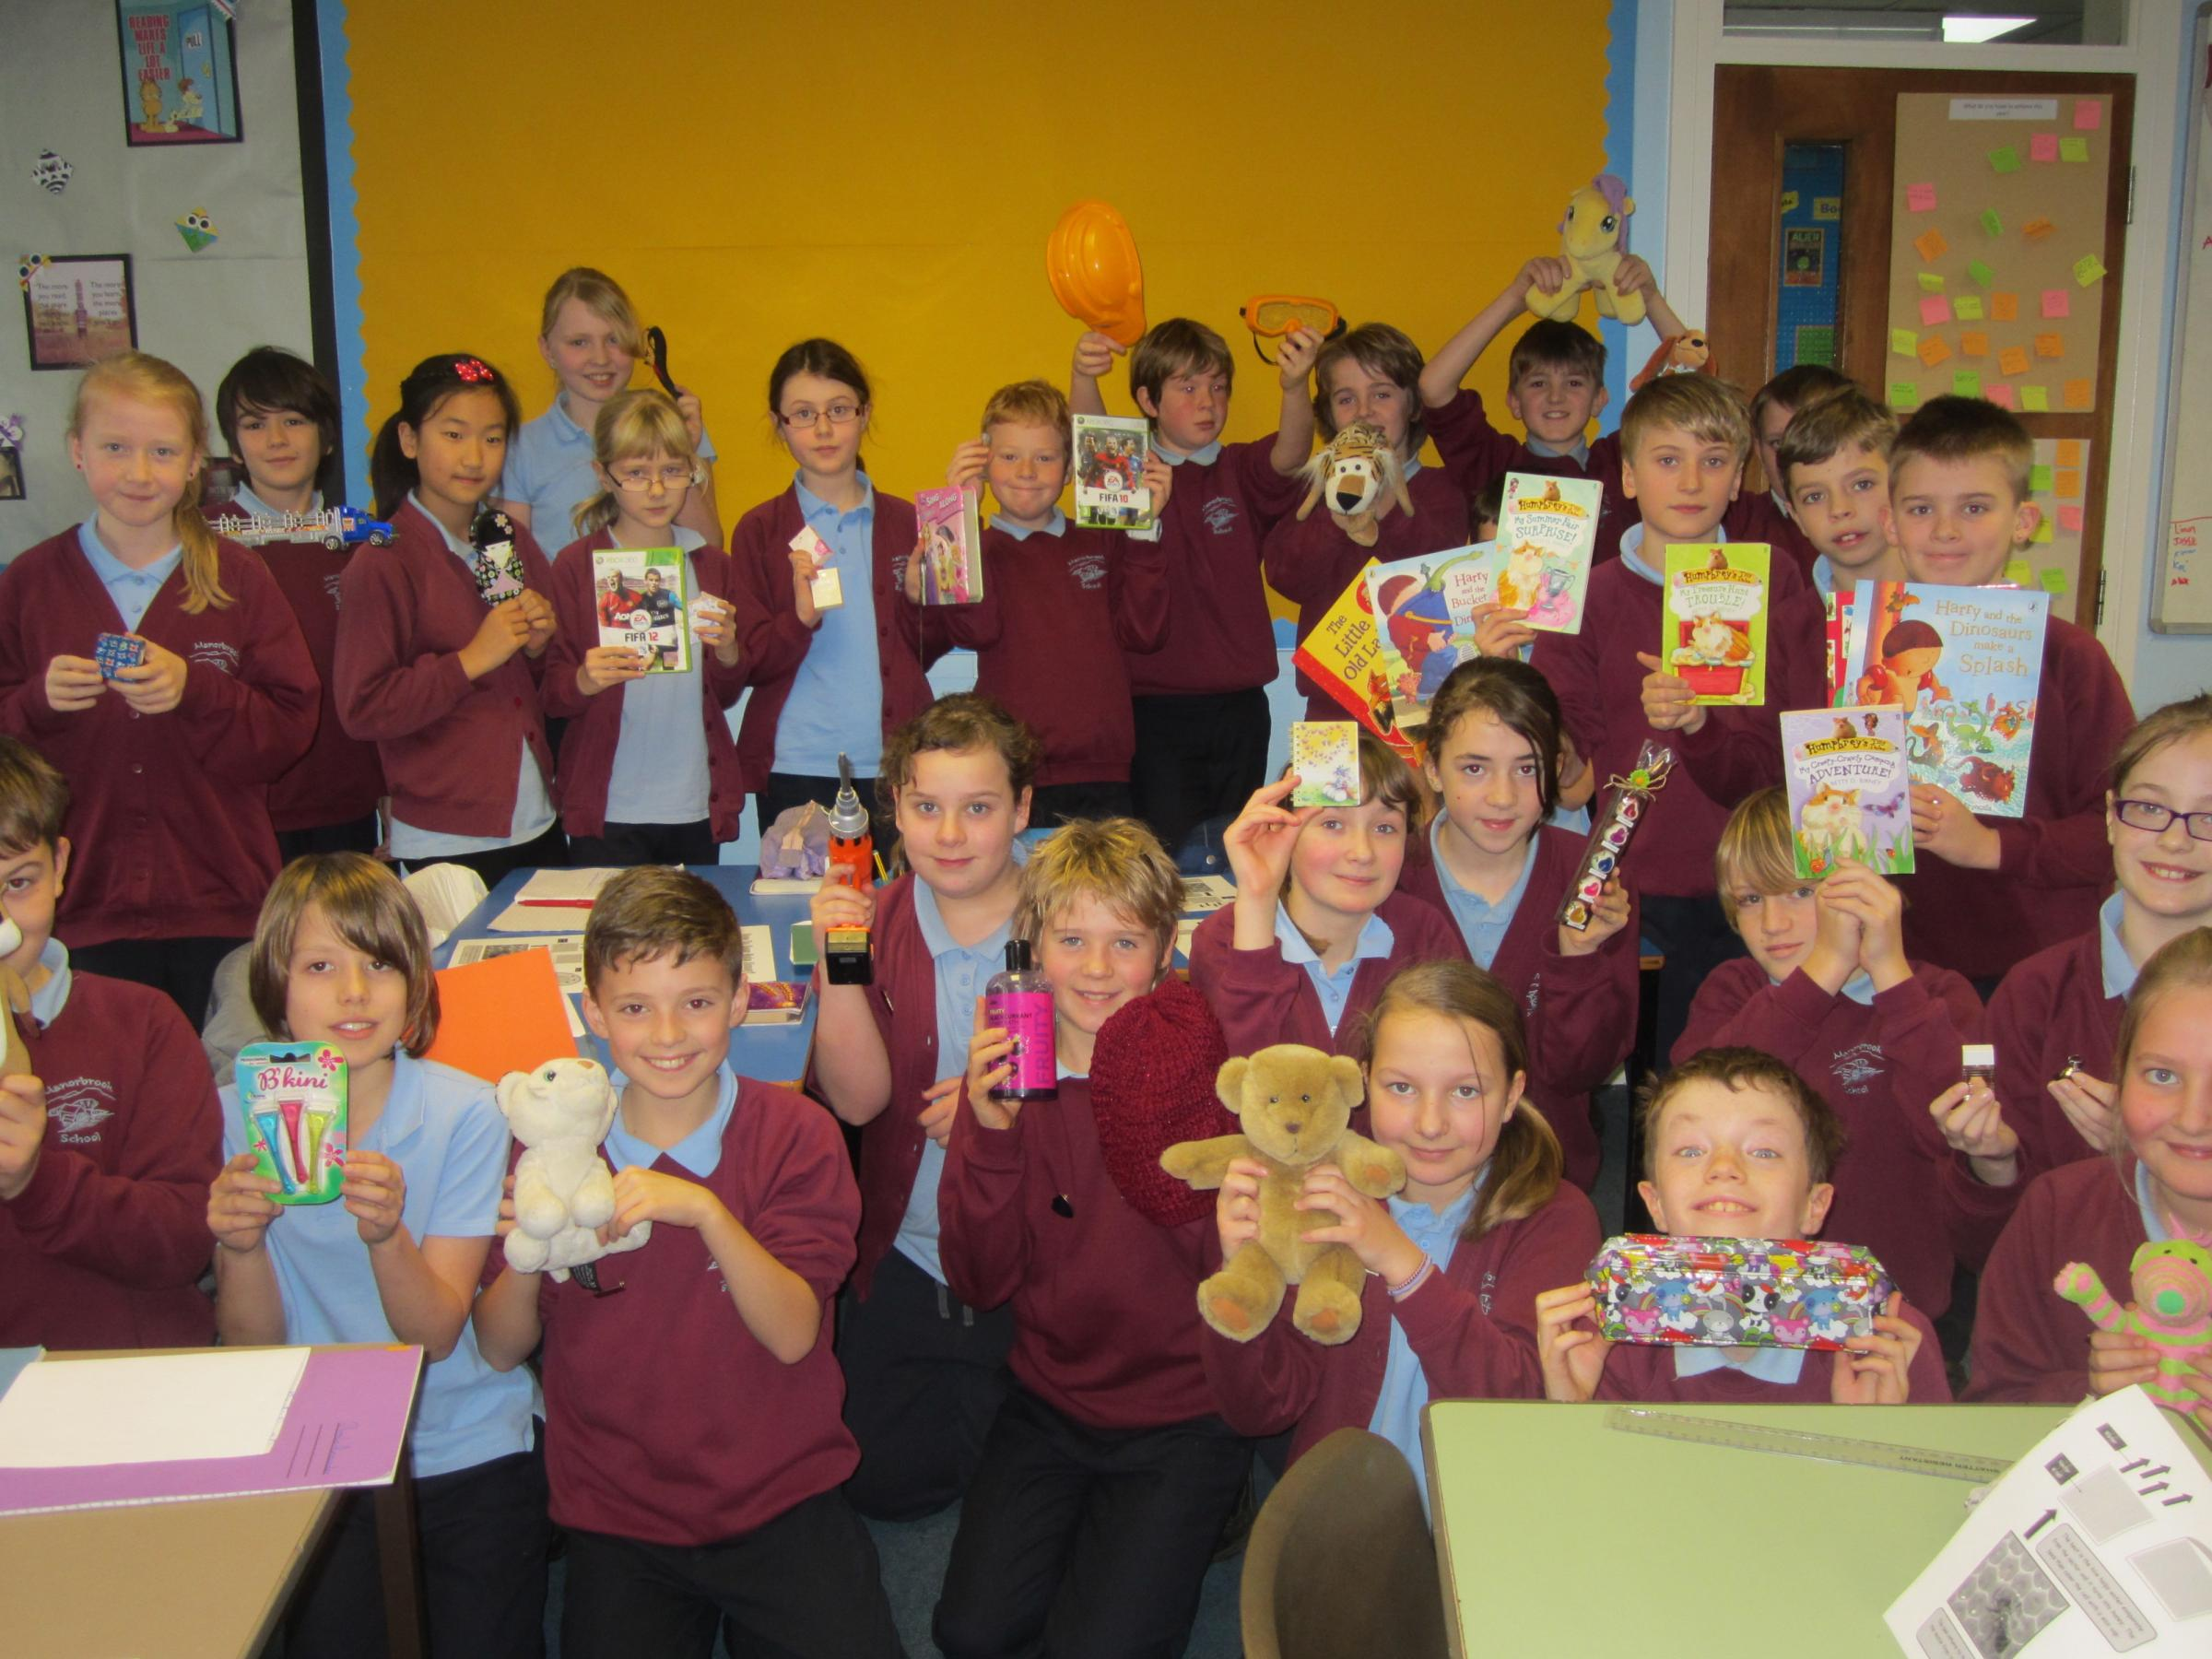 The Year 6 students who raised £200 to help the poor in the the Philippines